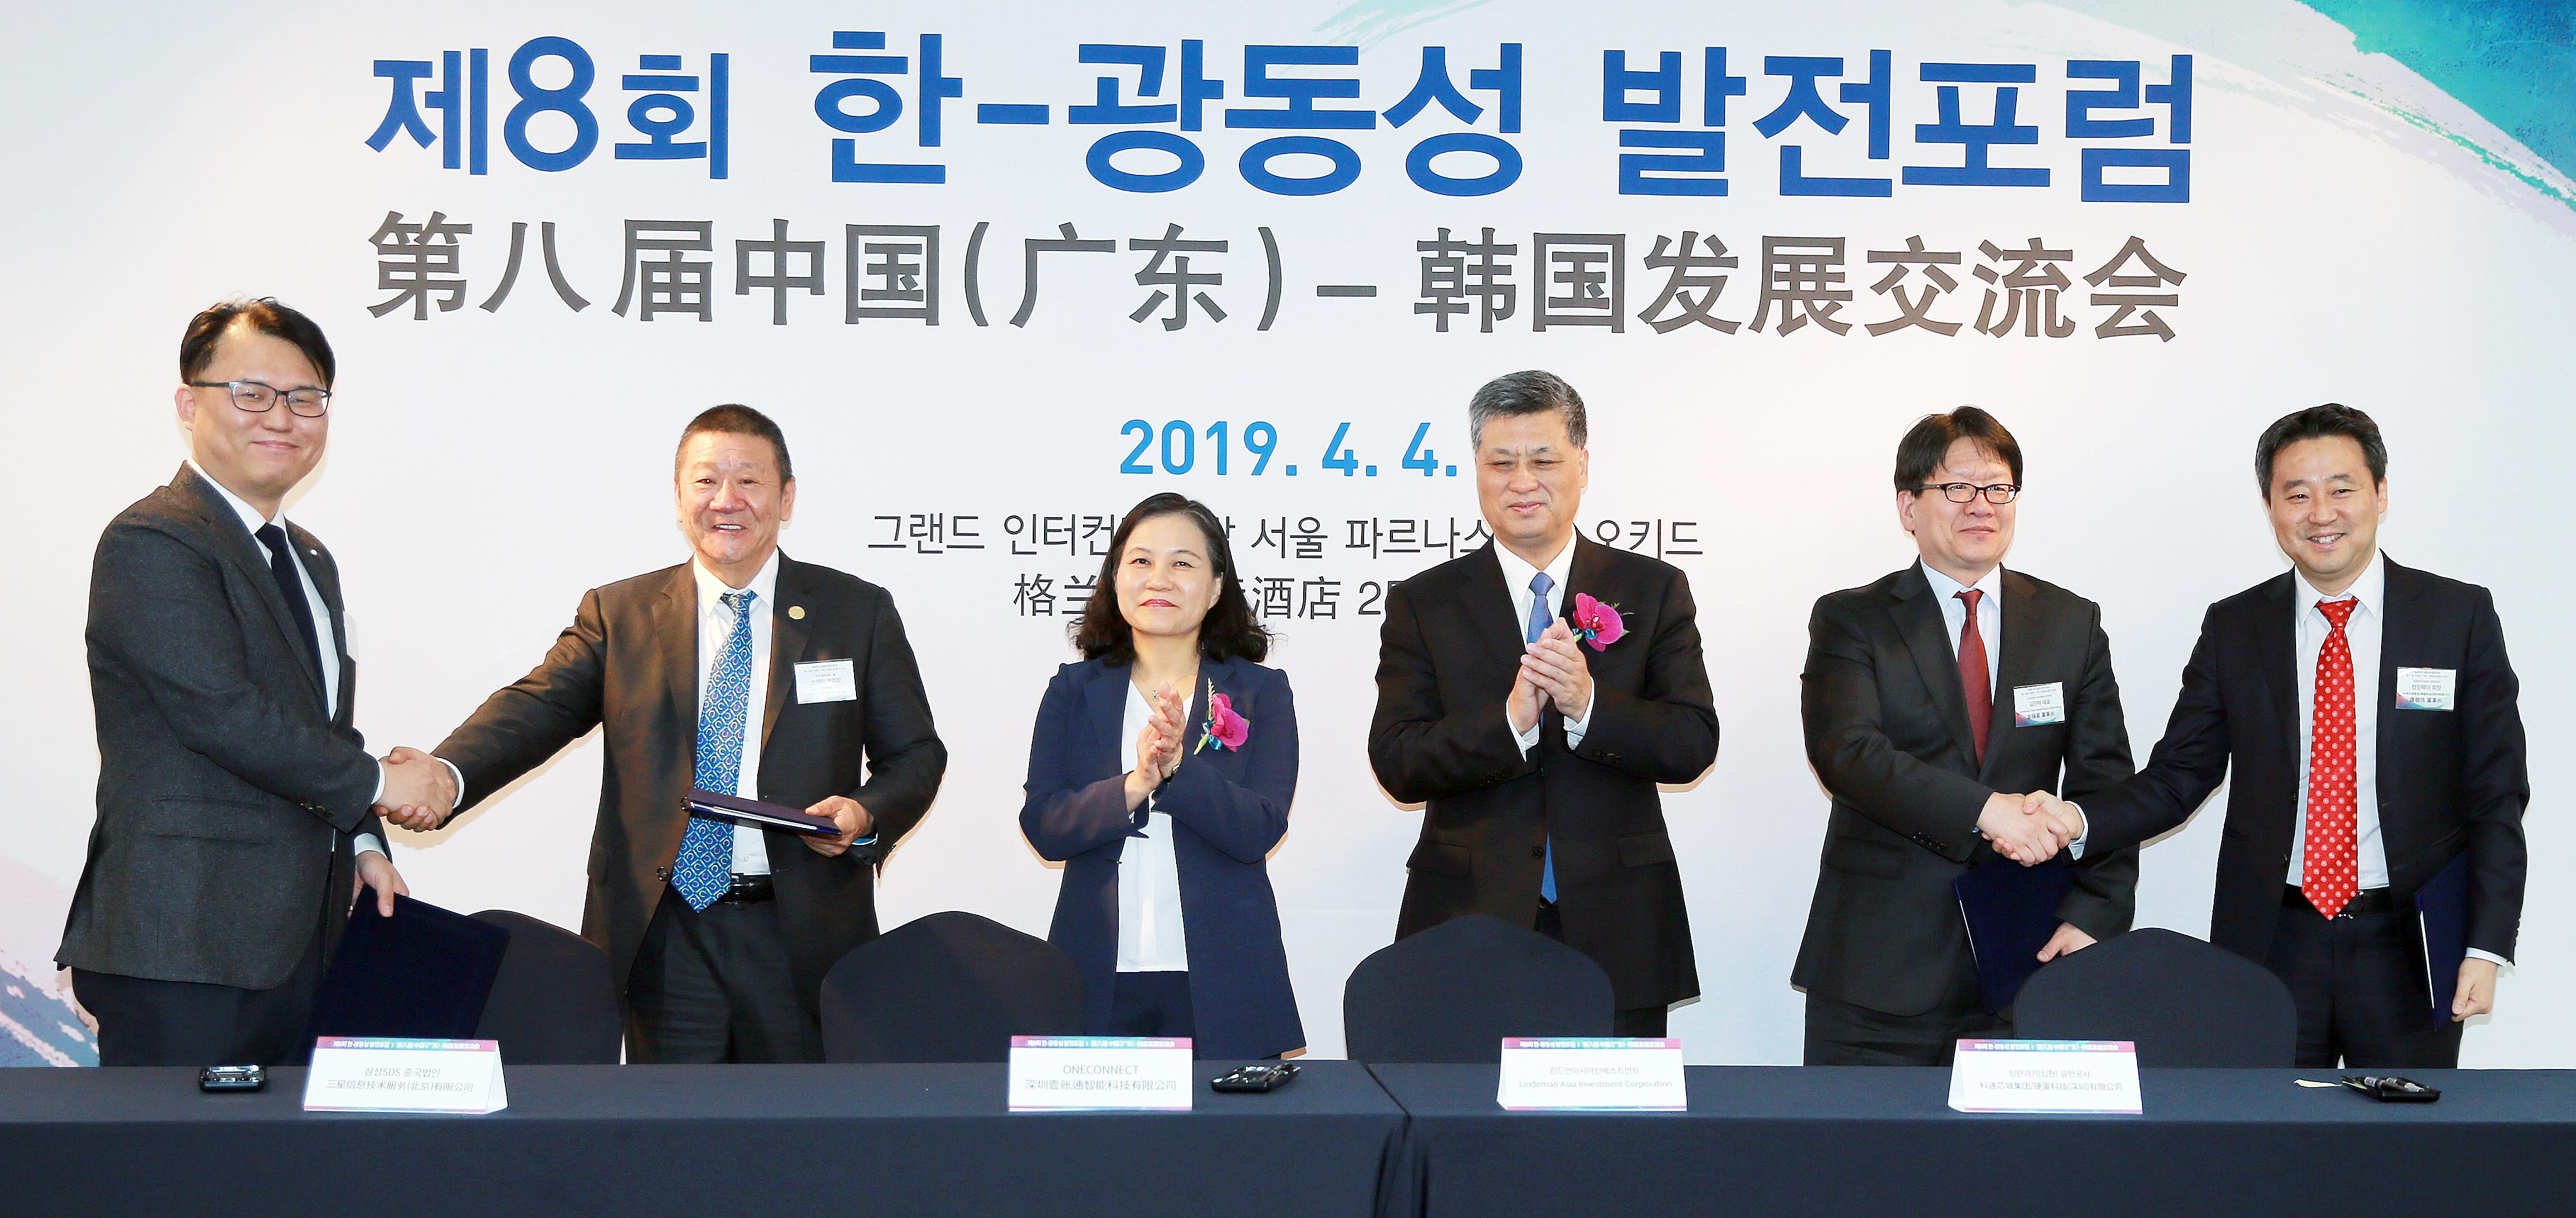 8th Korea-Guangdong Economic and Trade Development Forum takes place in Seoul Image 0